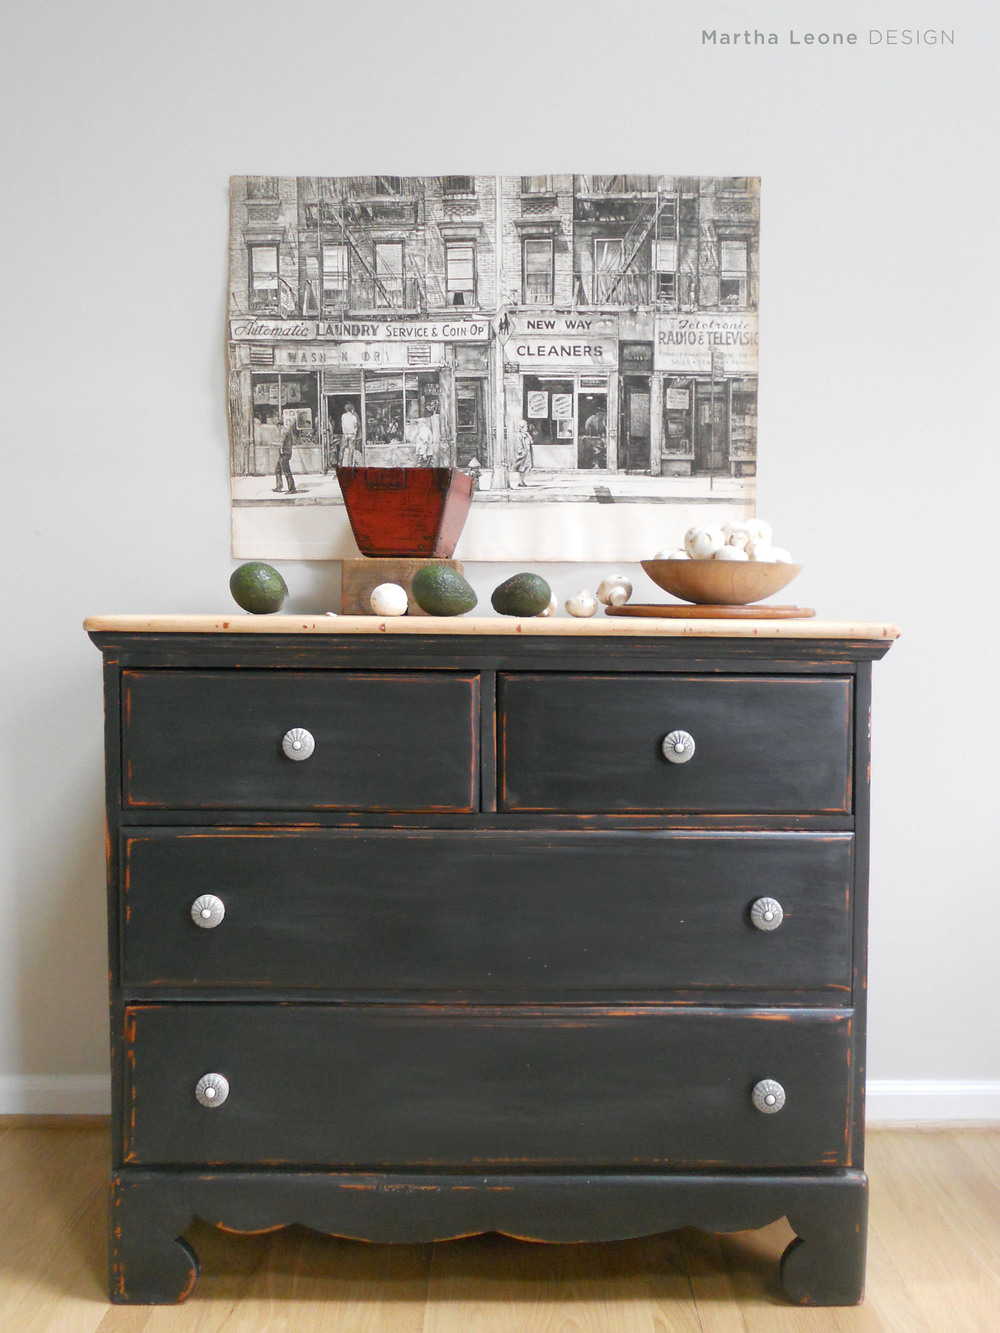 black-chest-of-drawers8-martha-leone-design.jpg